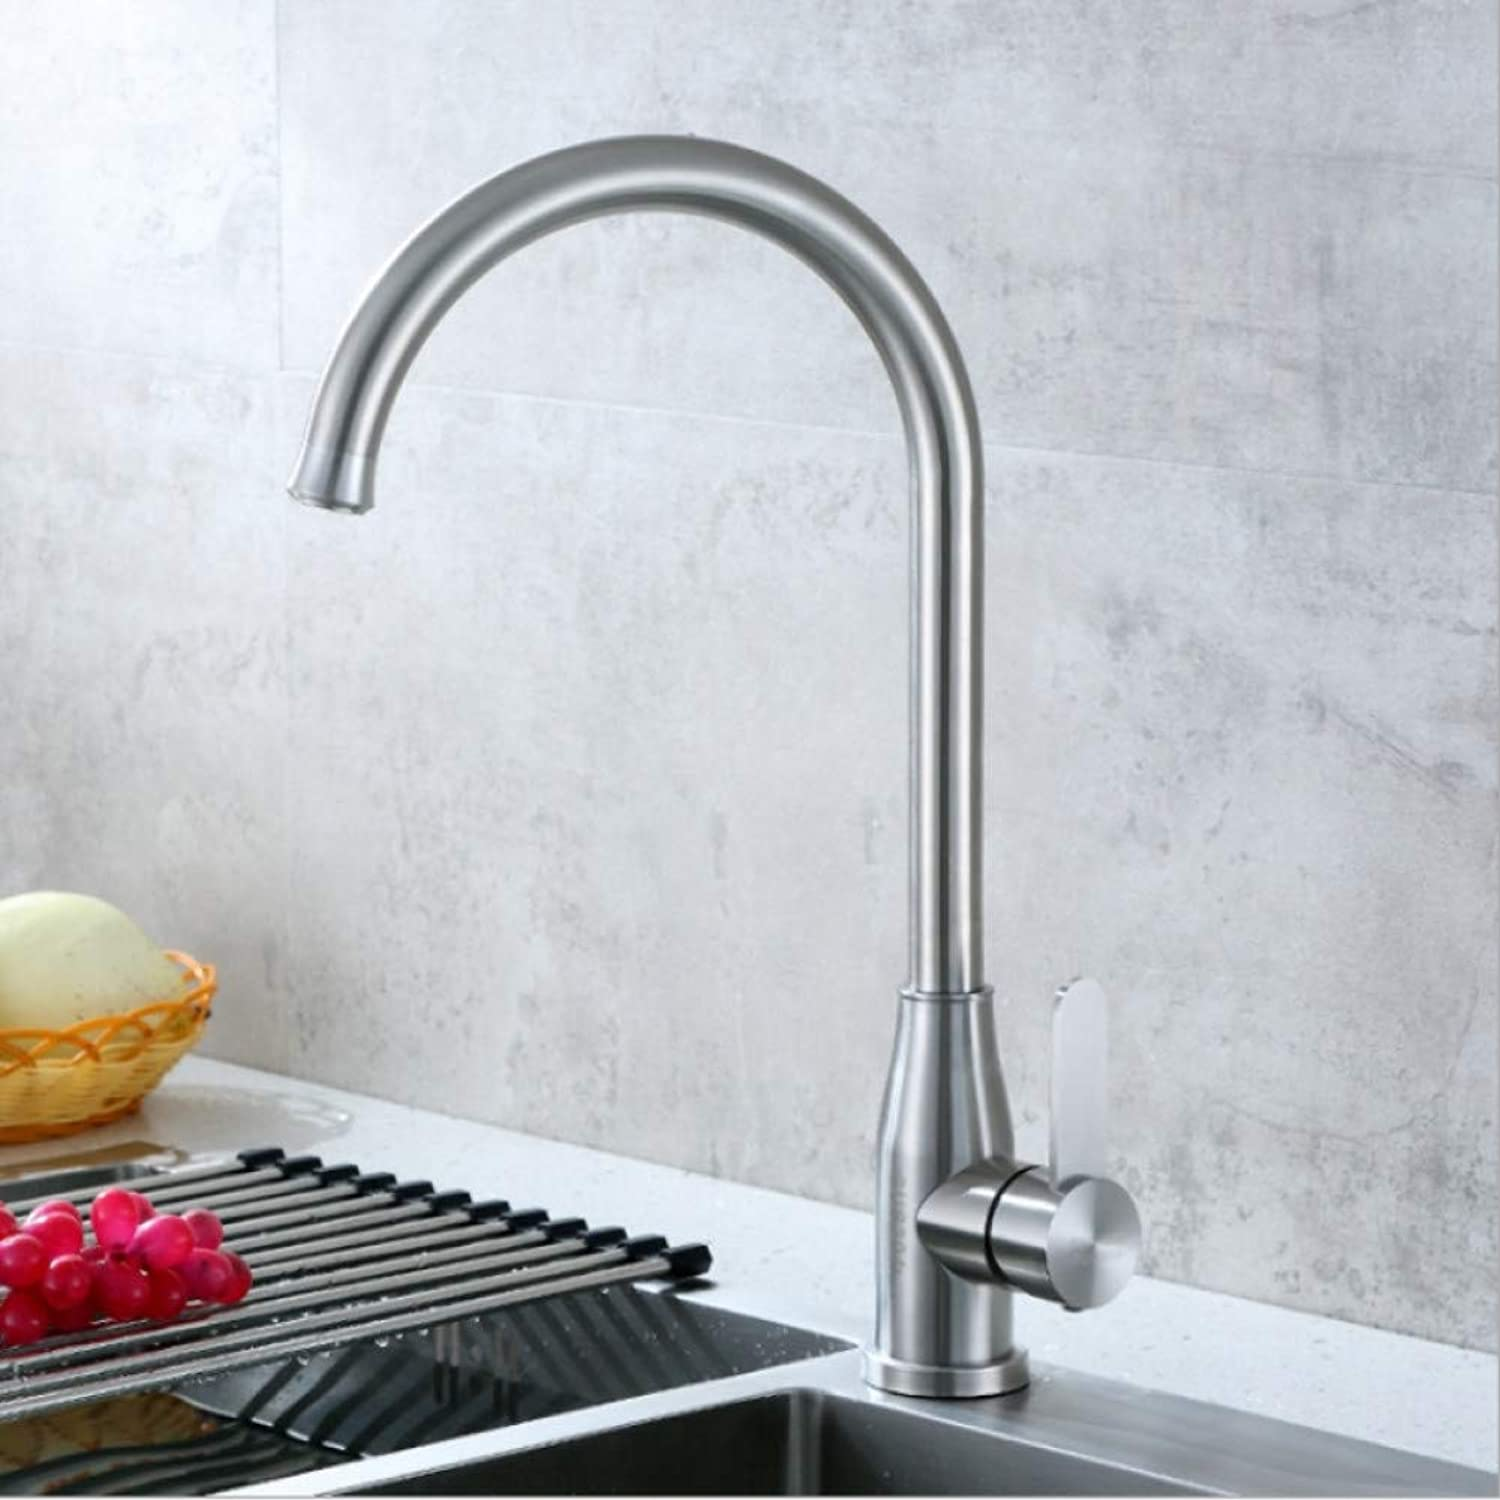 YHSGY Kitchen Taps 304 Stainless Steel Brushed Kitchen Sink Faucet Sink Hot and Cold Valve Wine Bottle Tap